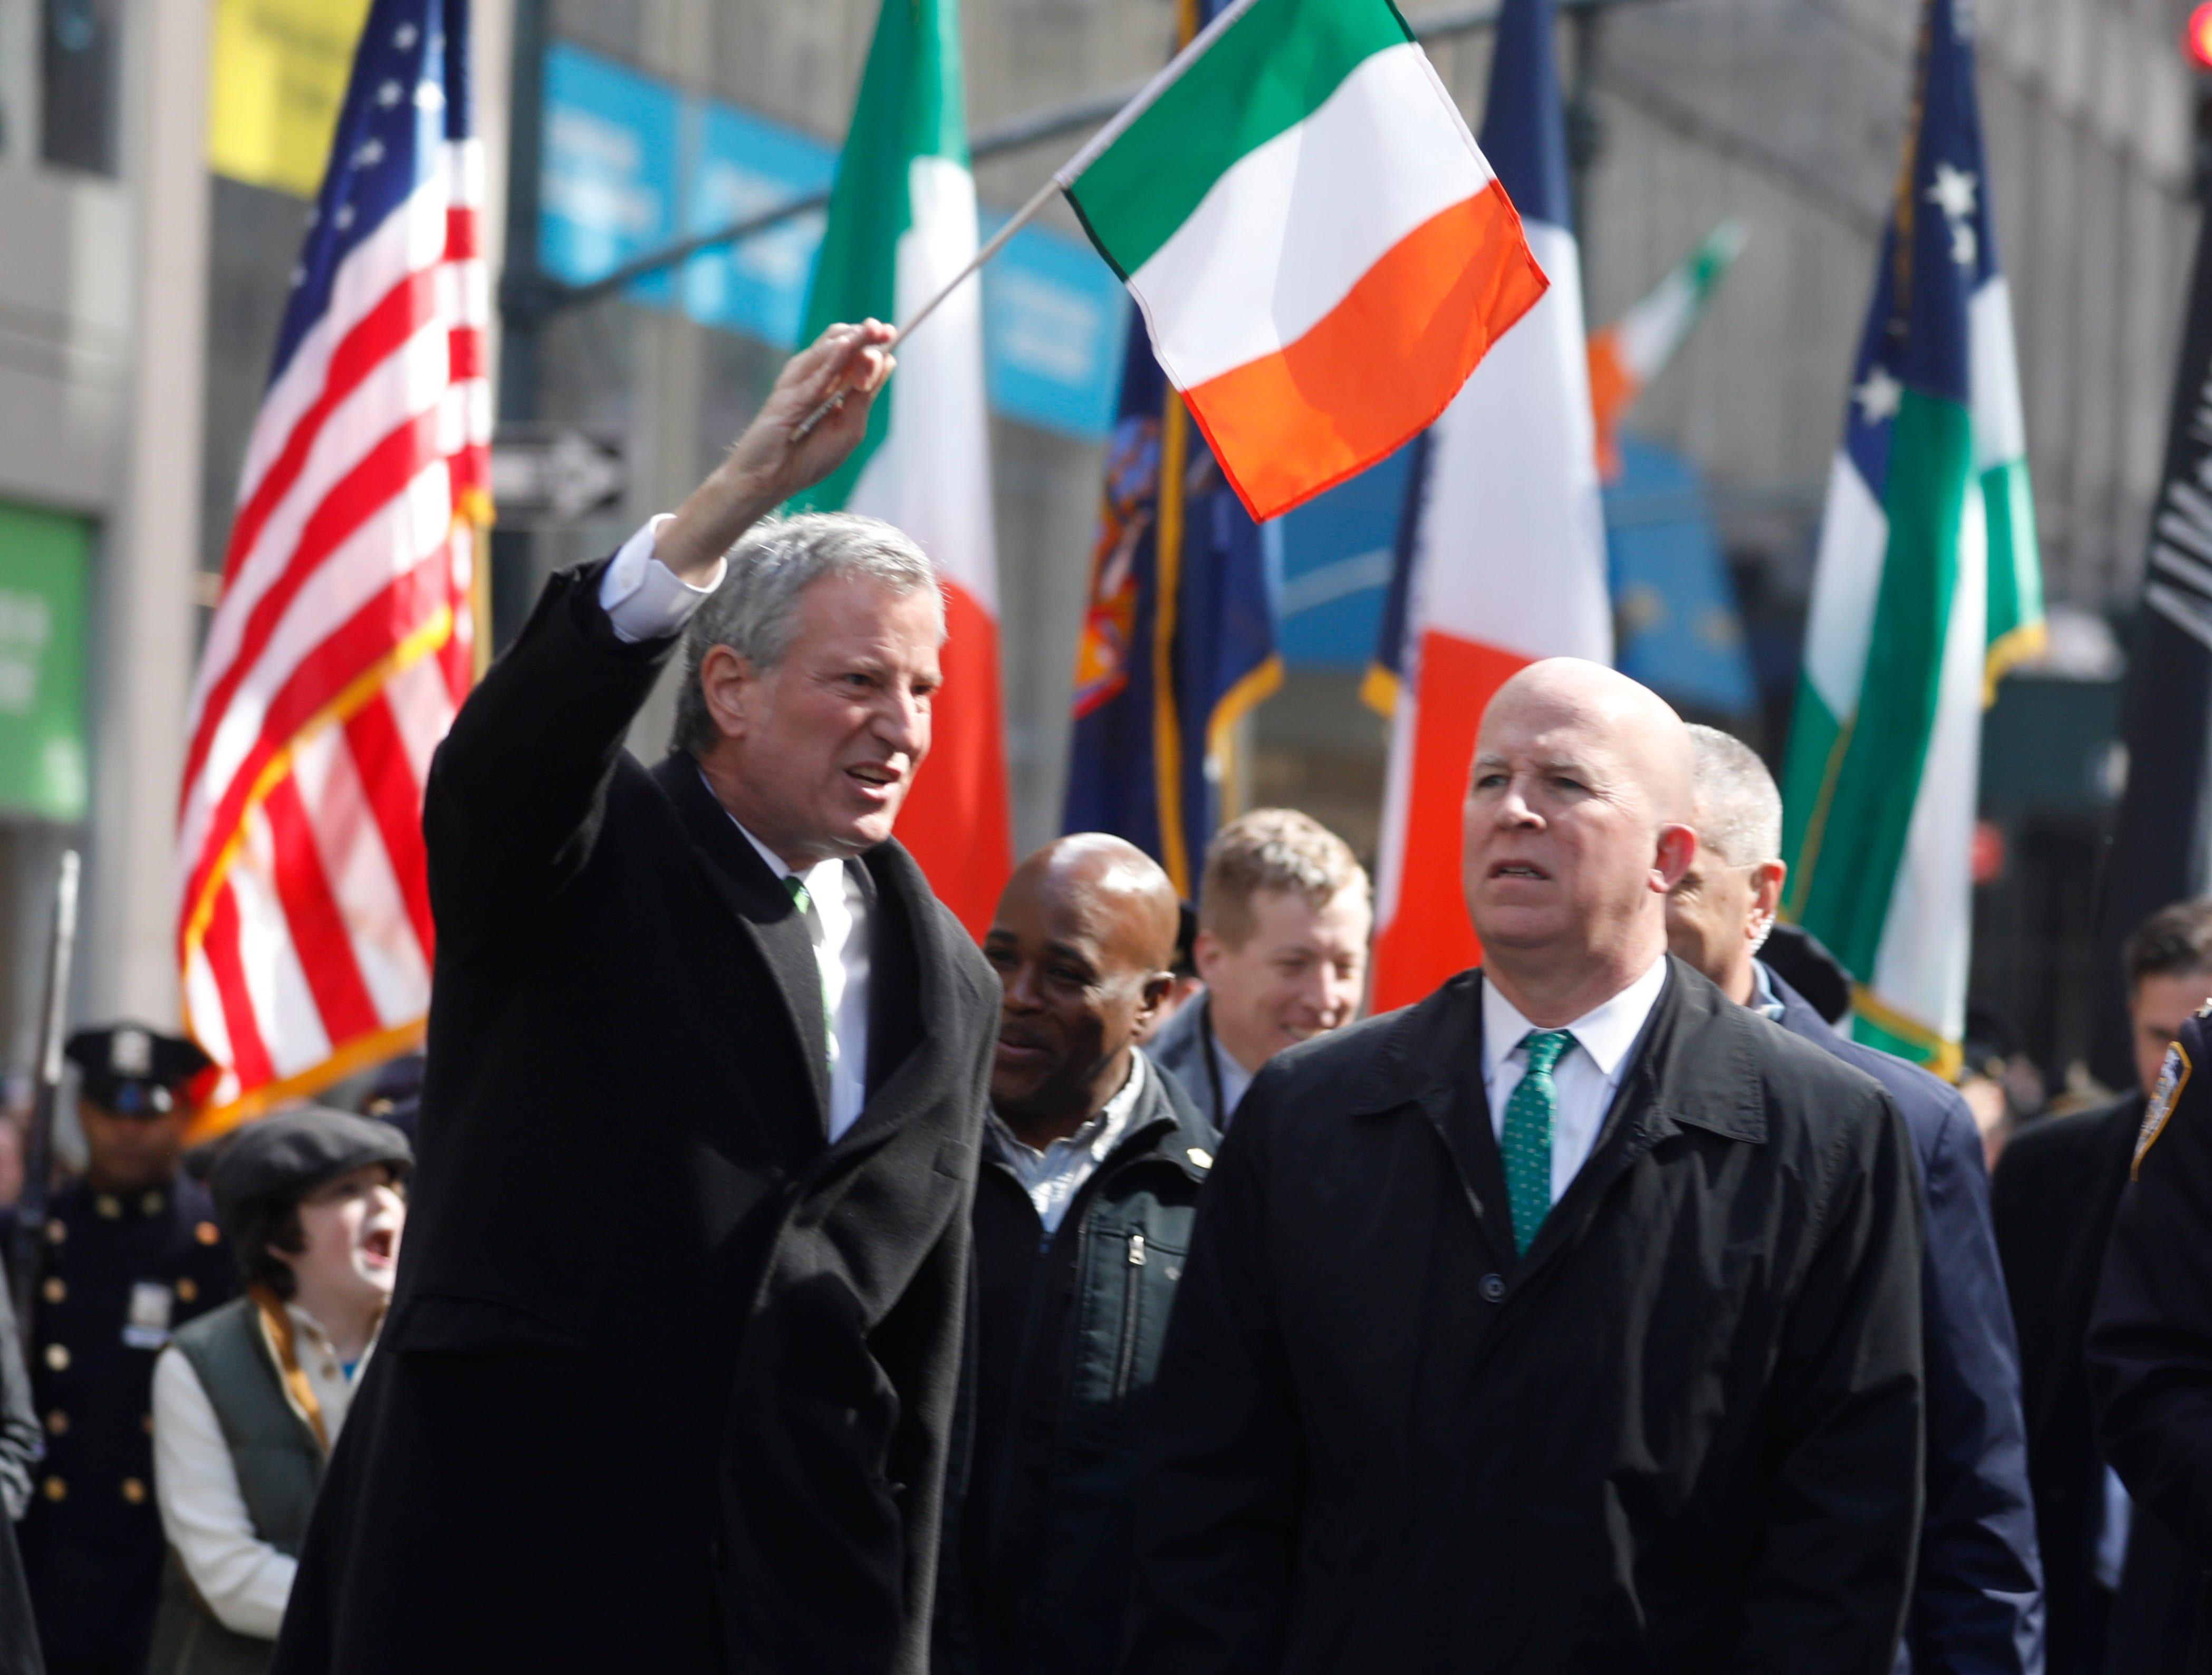 New York City Mayor Bill De Blasio and police commissioner James P. O'Neill march in the 258th annual St. Patrick's Day Parade on March 16, 2019.